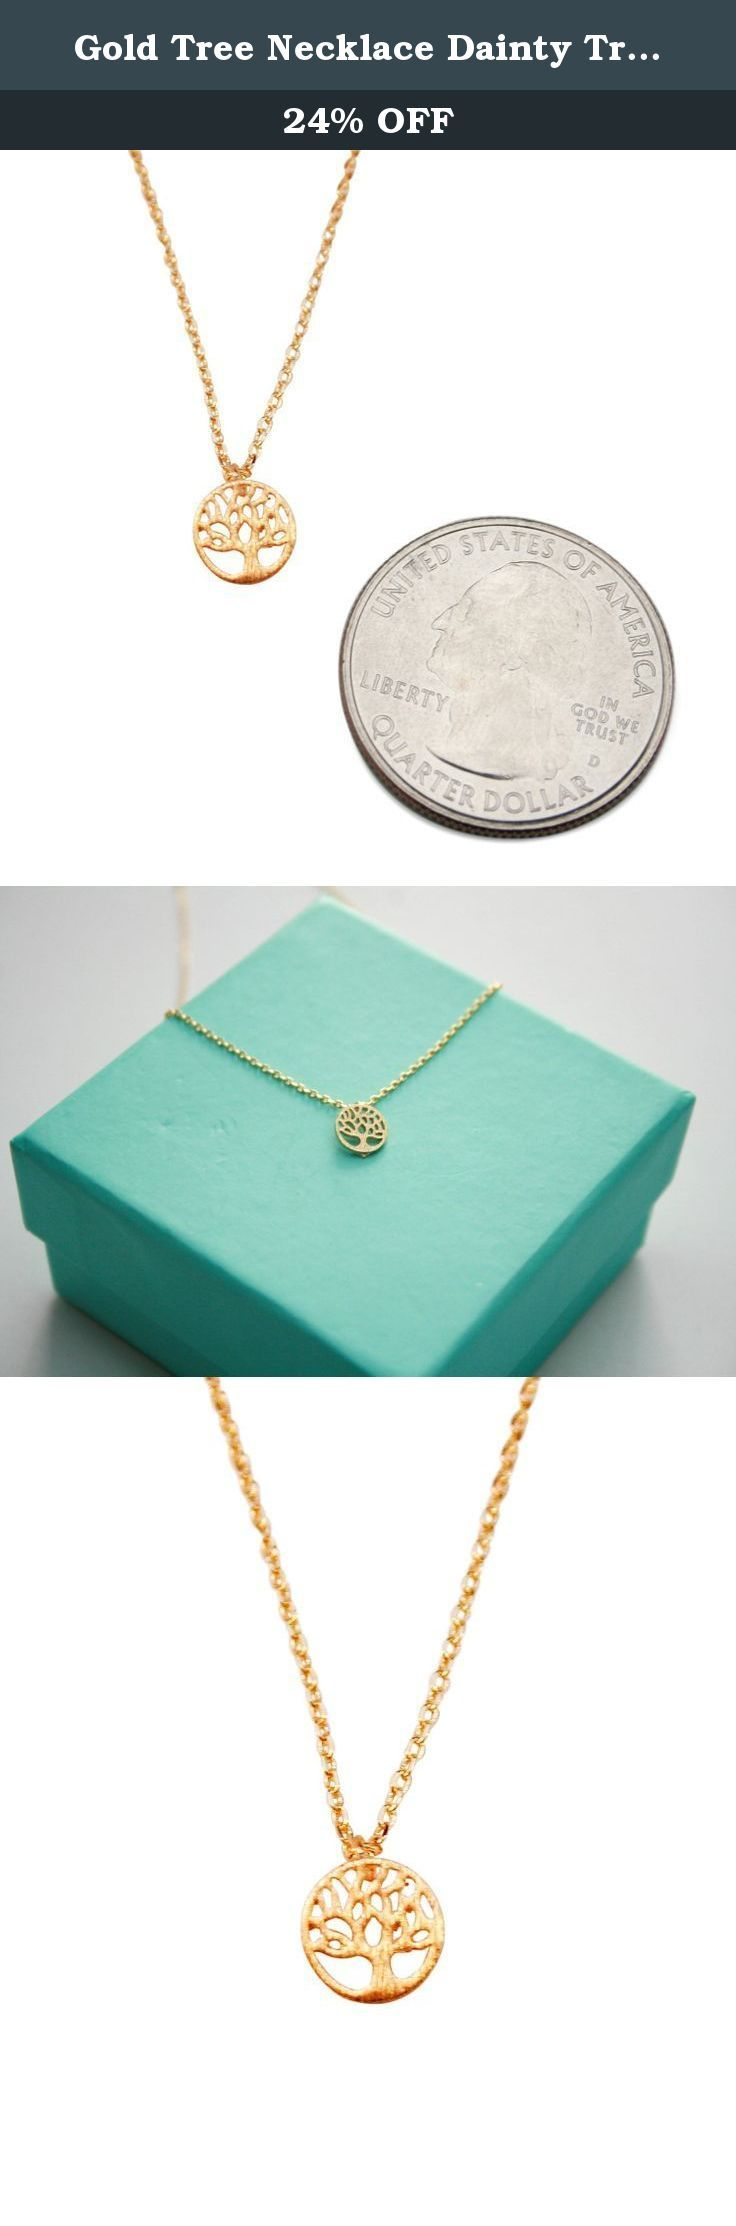 Gold Tree Necklace Dainty Tree of Life Pendant Family Tree Necklace Little Tree. The necklace has a gorgeous finish that creates an illusion of fine jewelry. The necklace will not tarnish or turn green like other fashion jewelry necklaces. Items ship quickly from the U.S!.